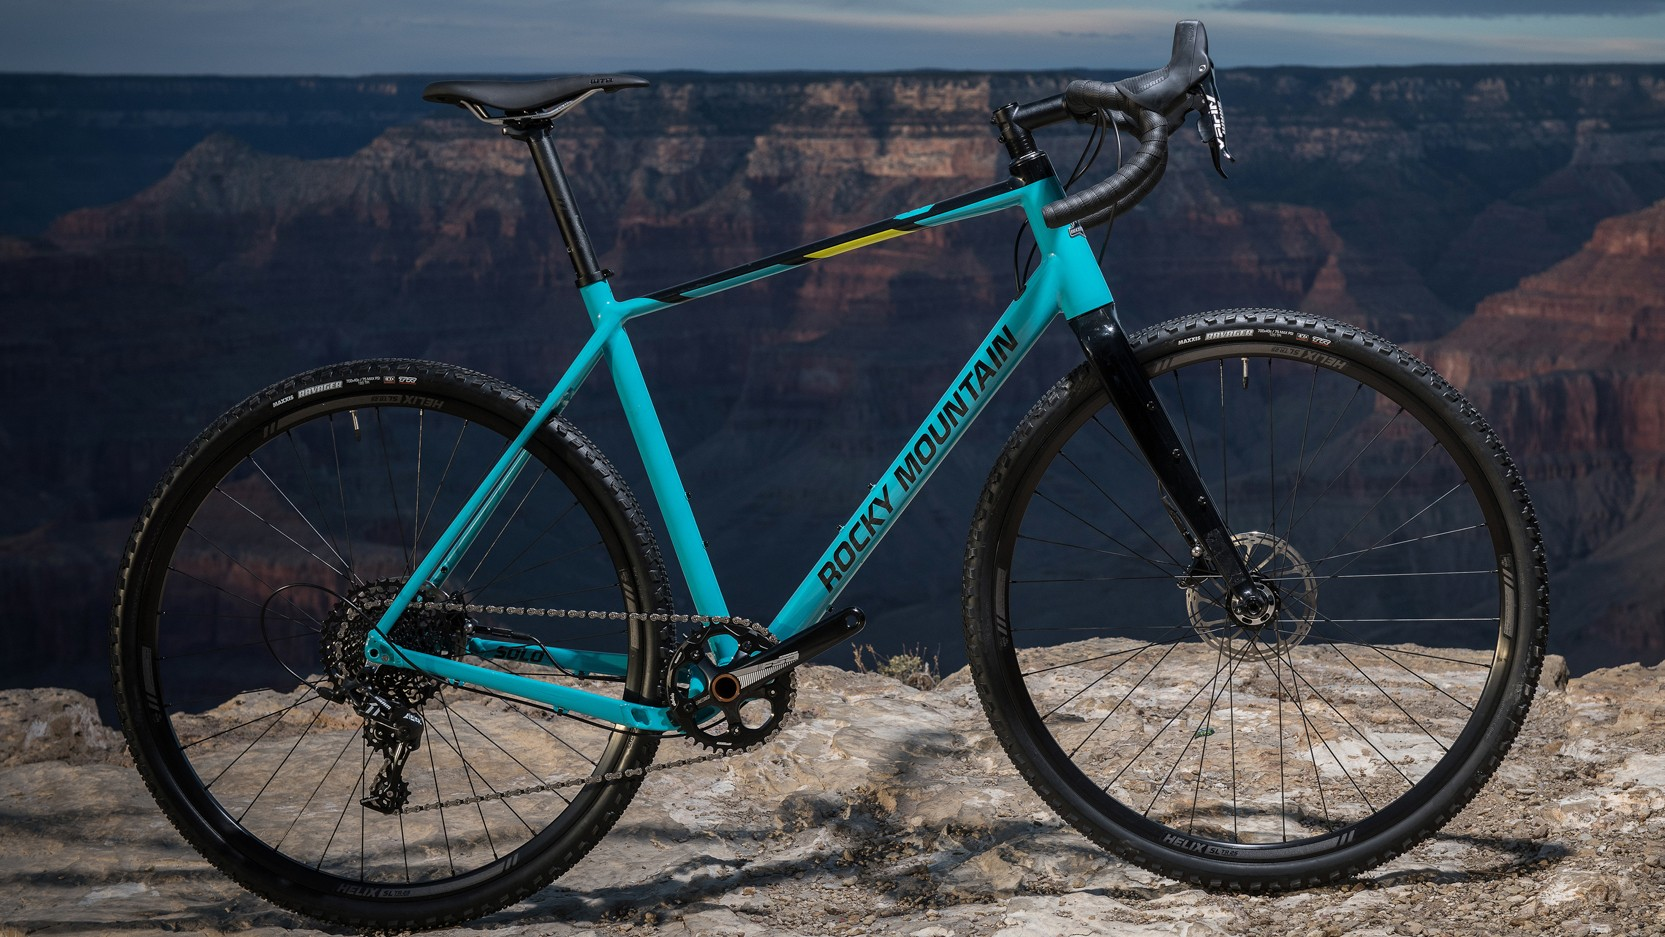 The Solo 50 features a SRAM Apex 1x11 build